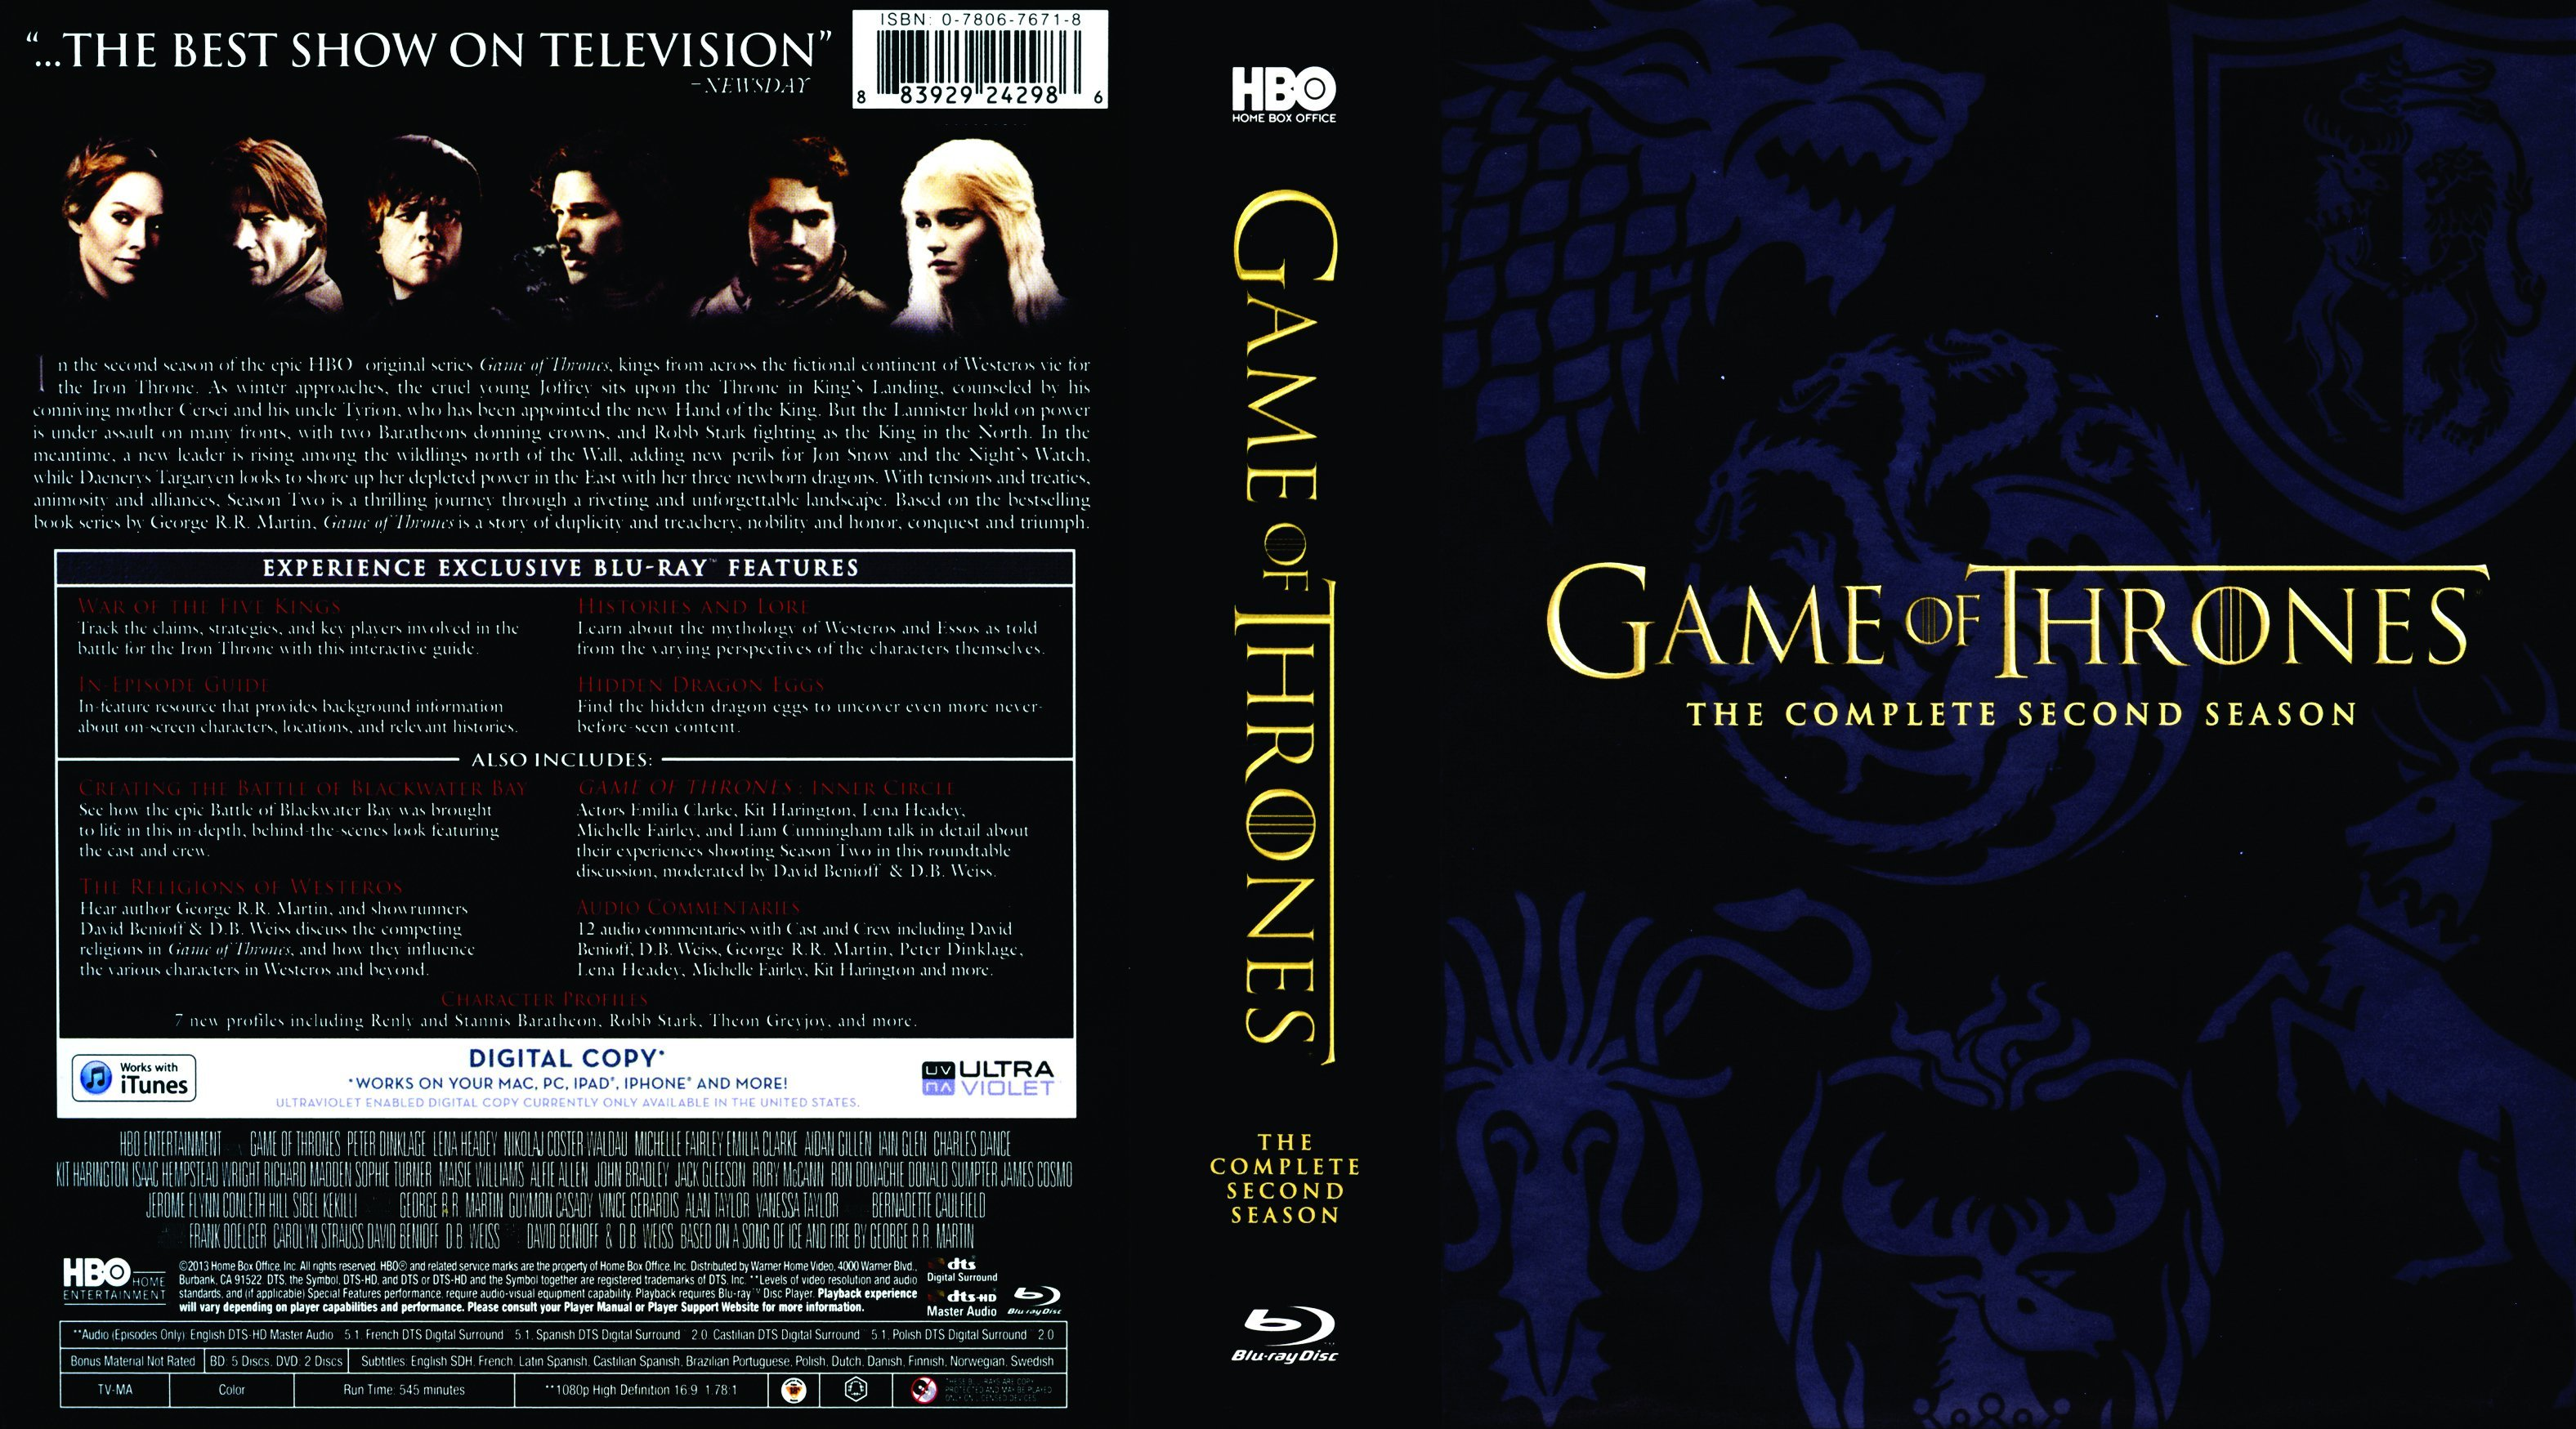 game of thrones season 2 r1 blu ray dvd covers and labels. Black Bedroom Furniture Sets. Home Design Ideas